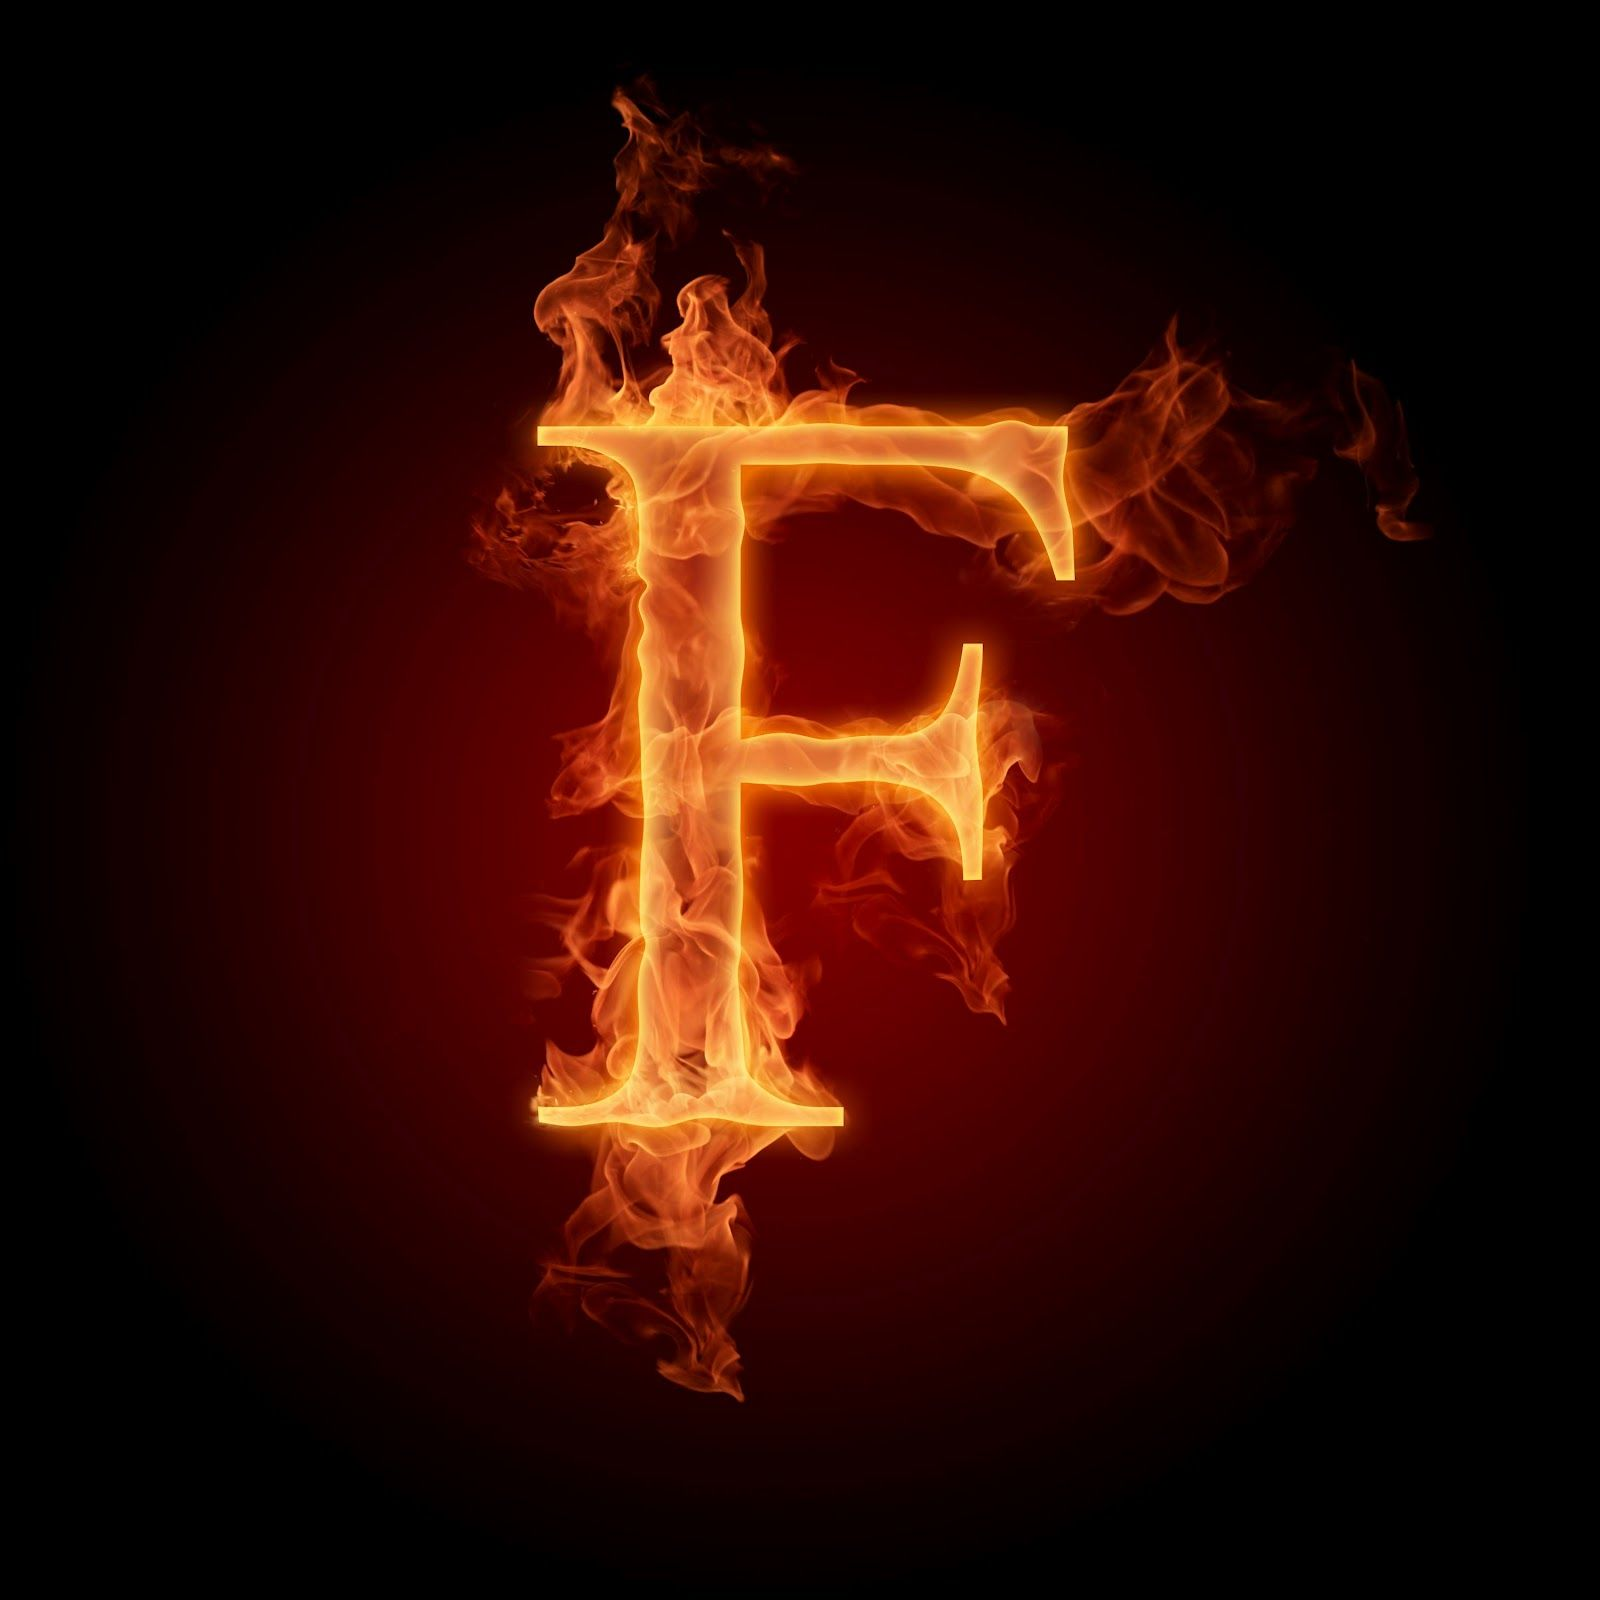 F Alphabet Hd Wallpaper Image Android Pinterest Alphabet